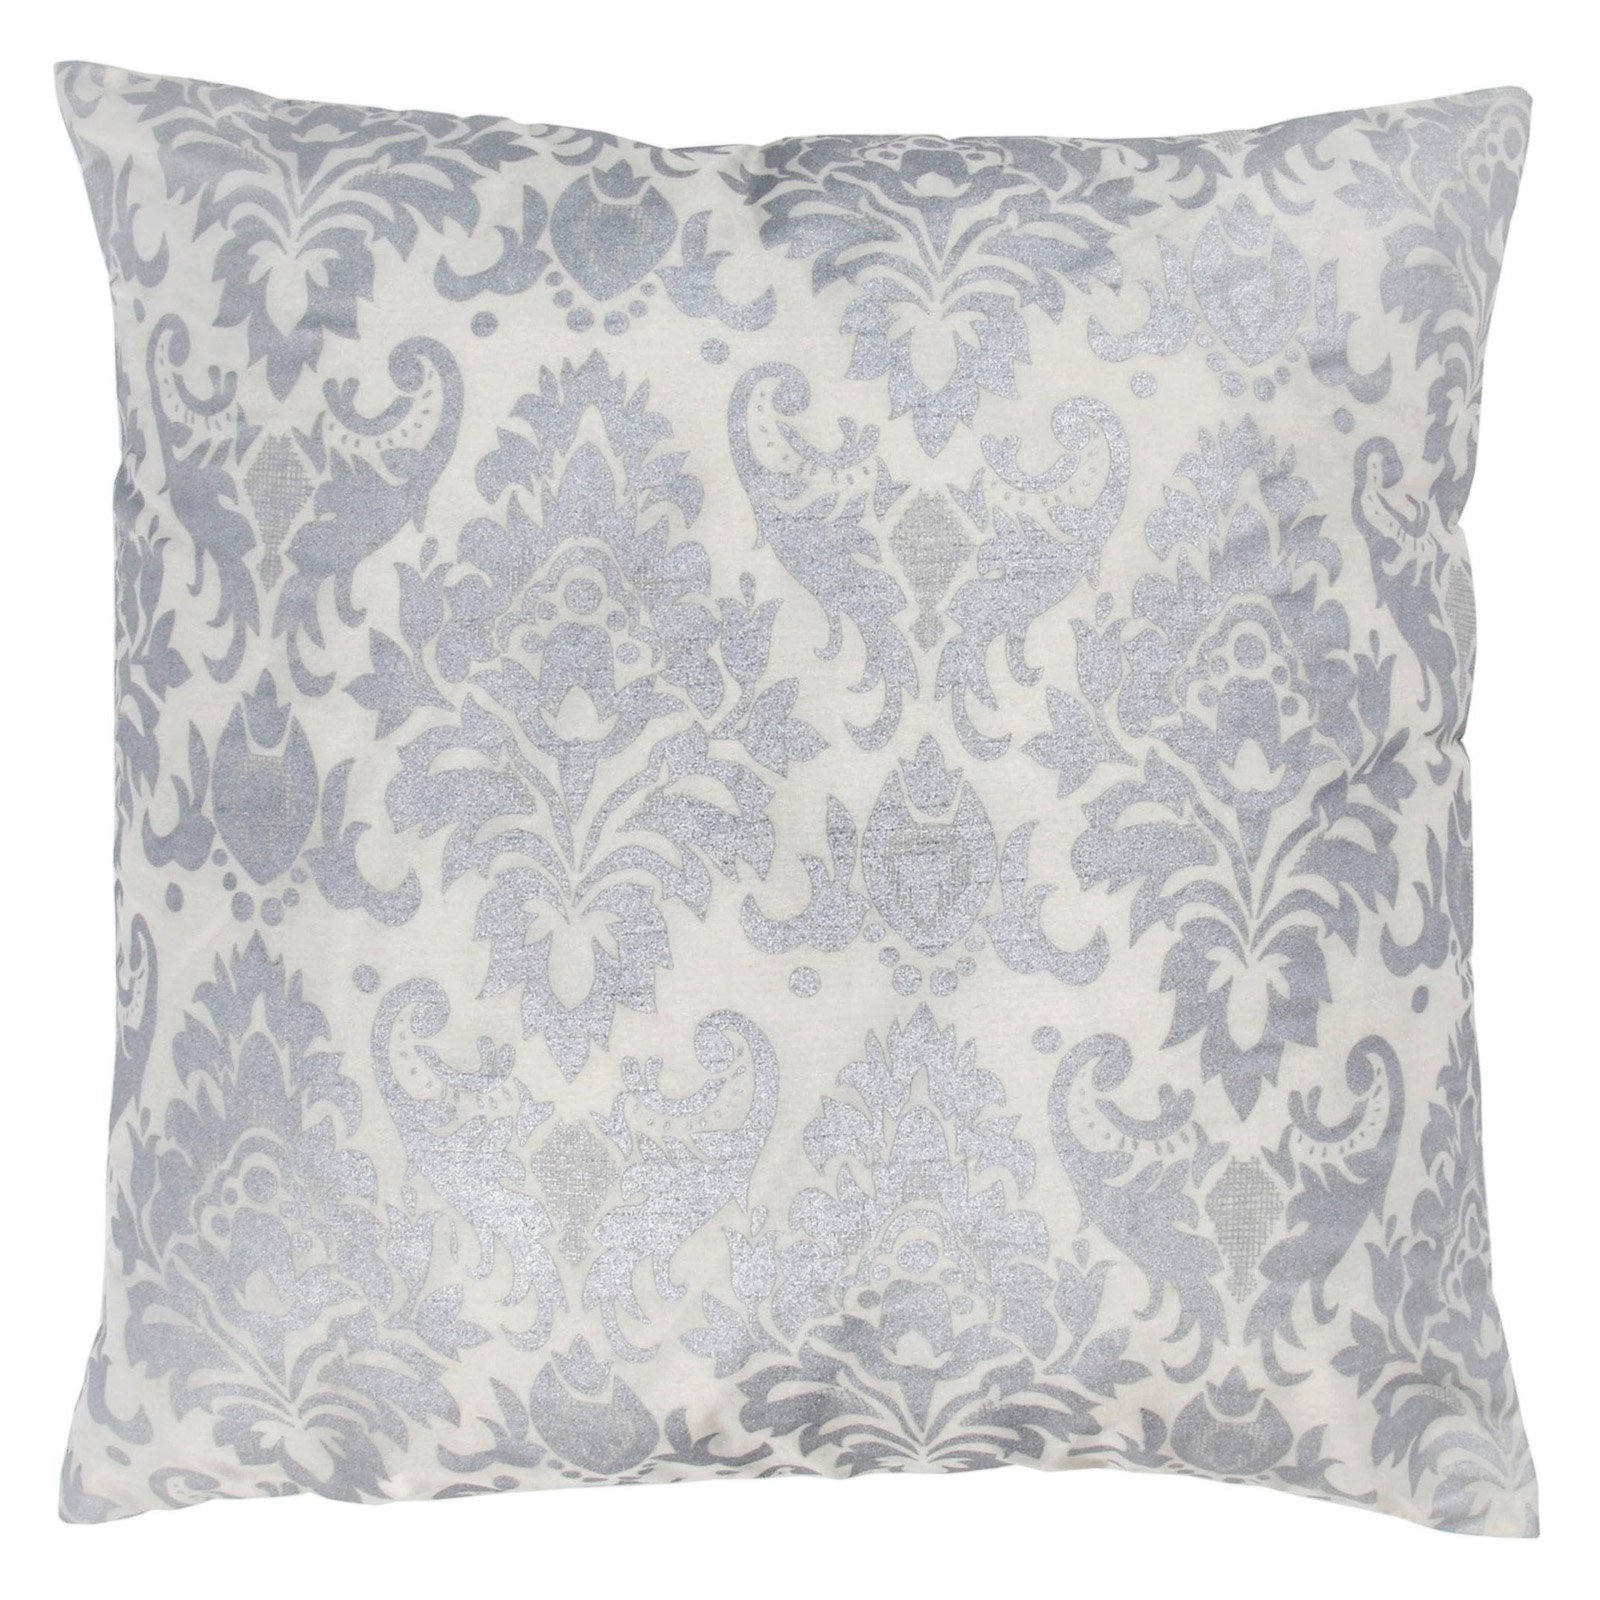 "Rizzy Home Decorative Poly Filled Throw Pillow Damask 18""X18"" Silver"